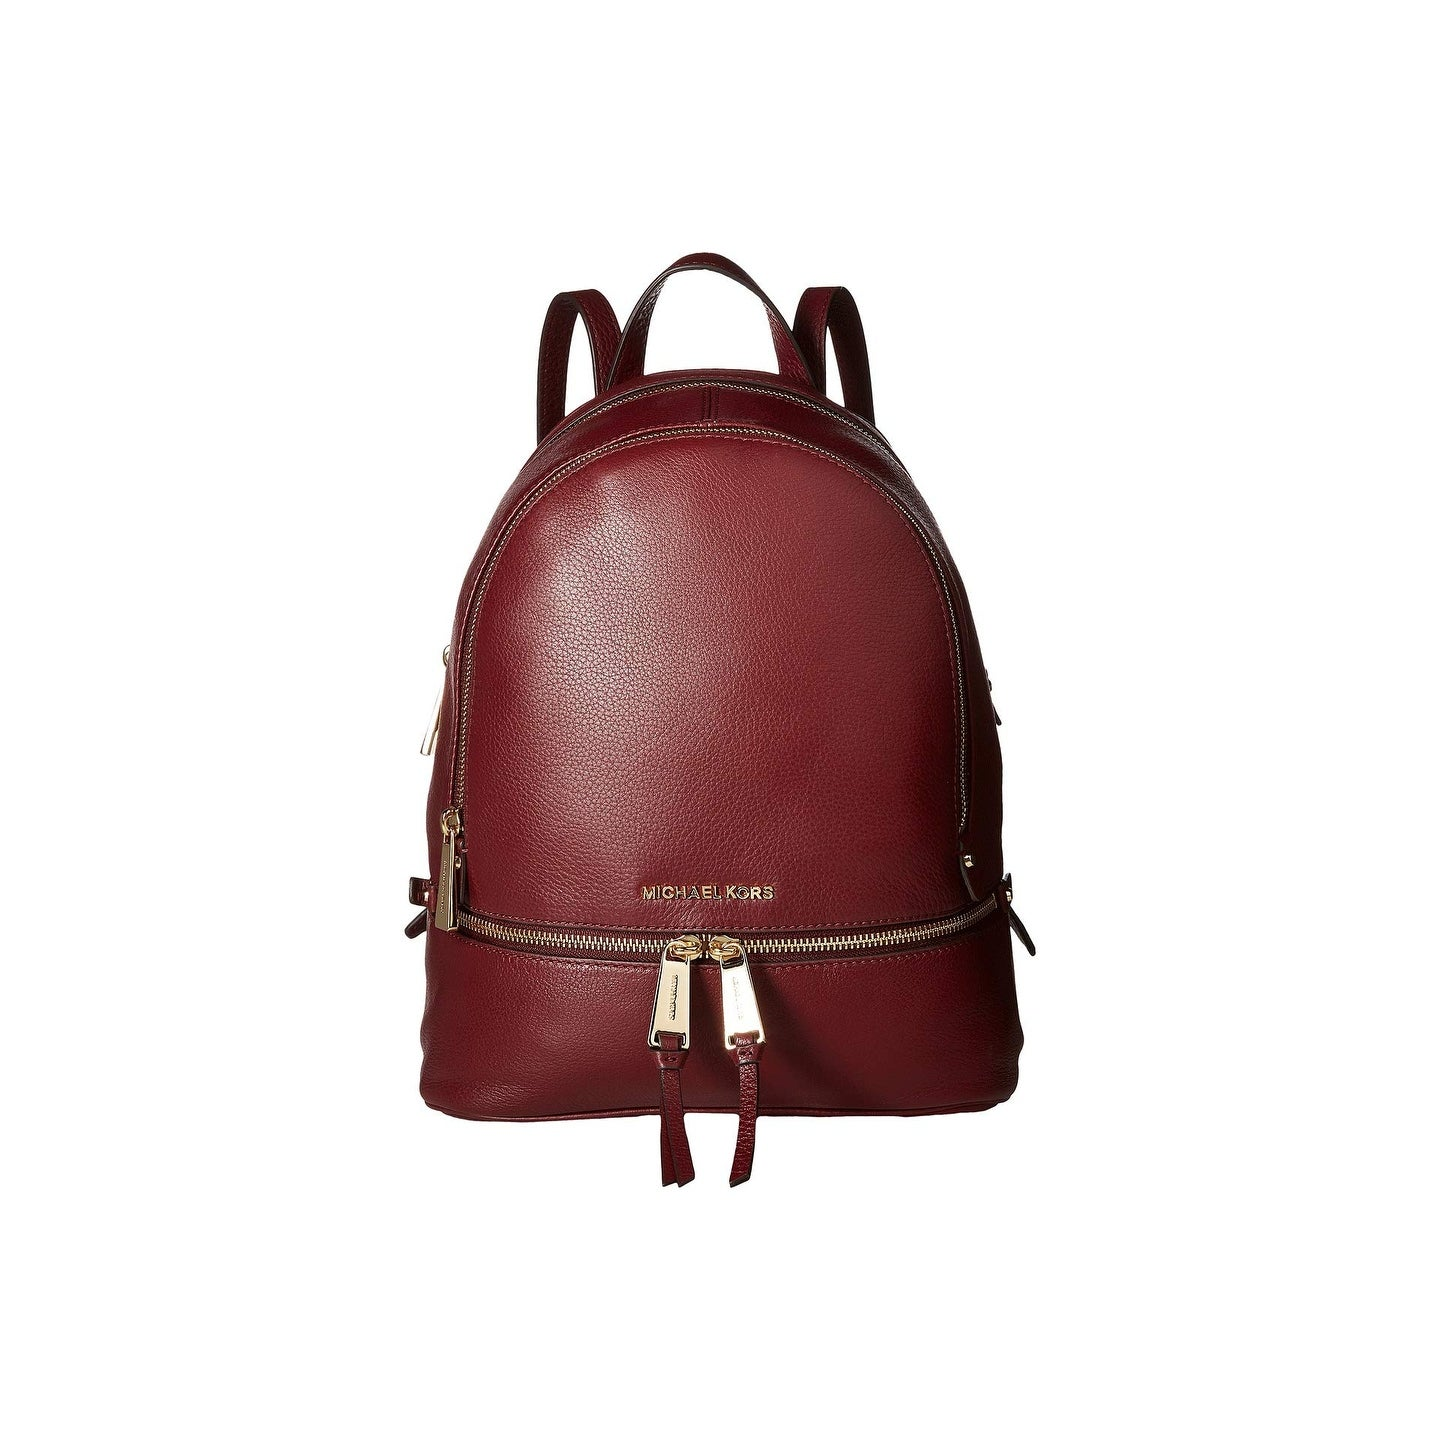 896295007709 Michael Kors Backpacks